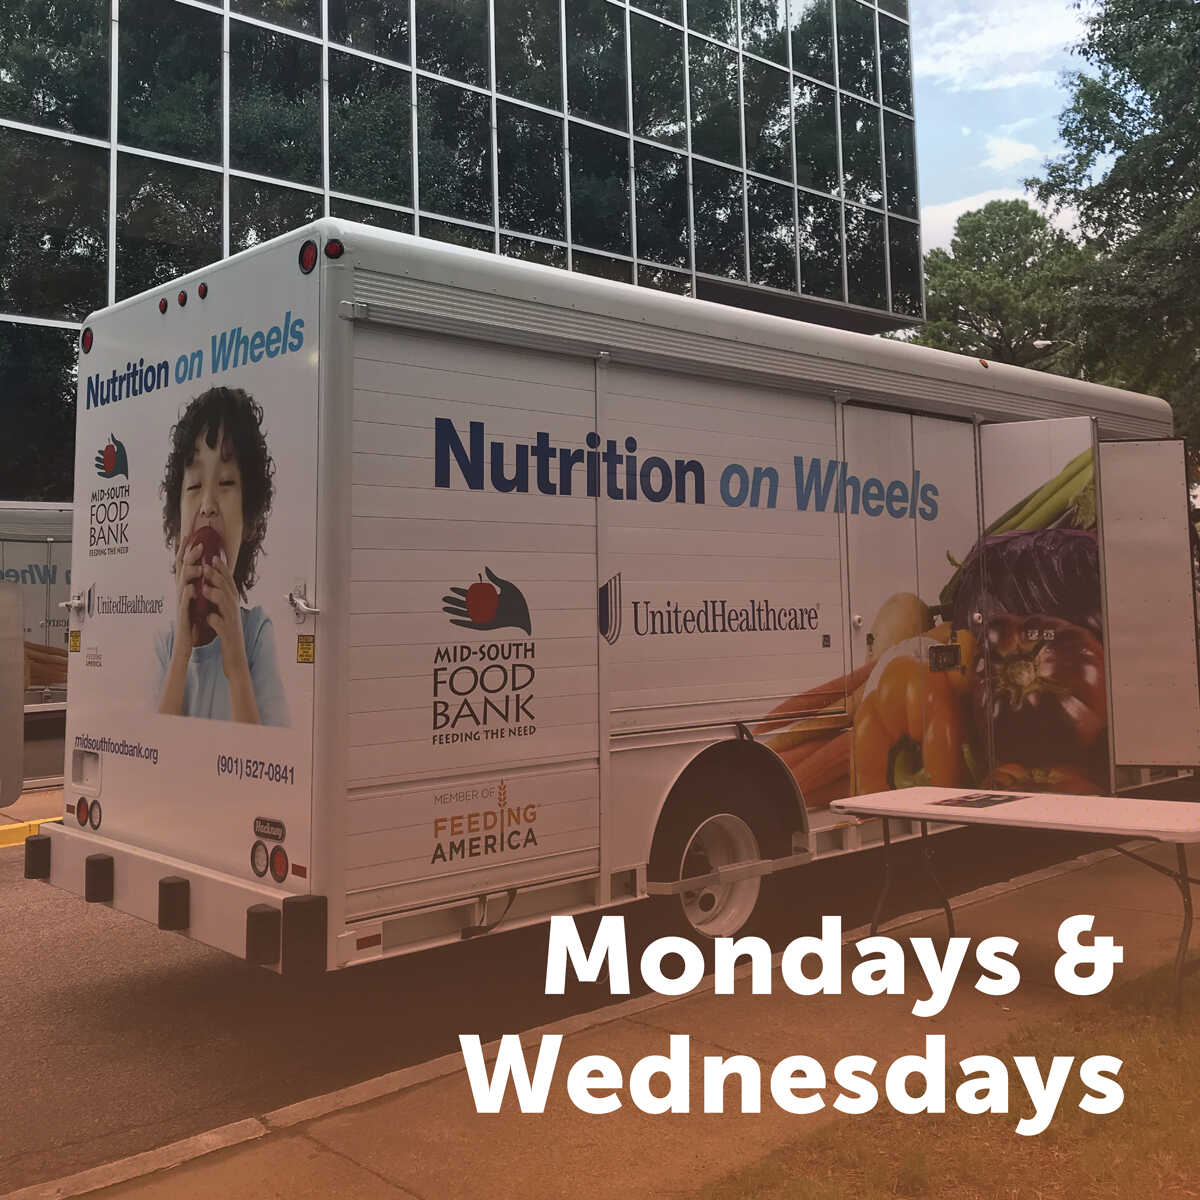 Nutrition on Wheels - Mondays and Wednesdays